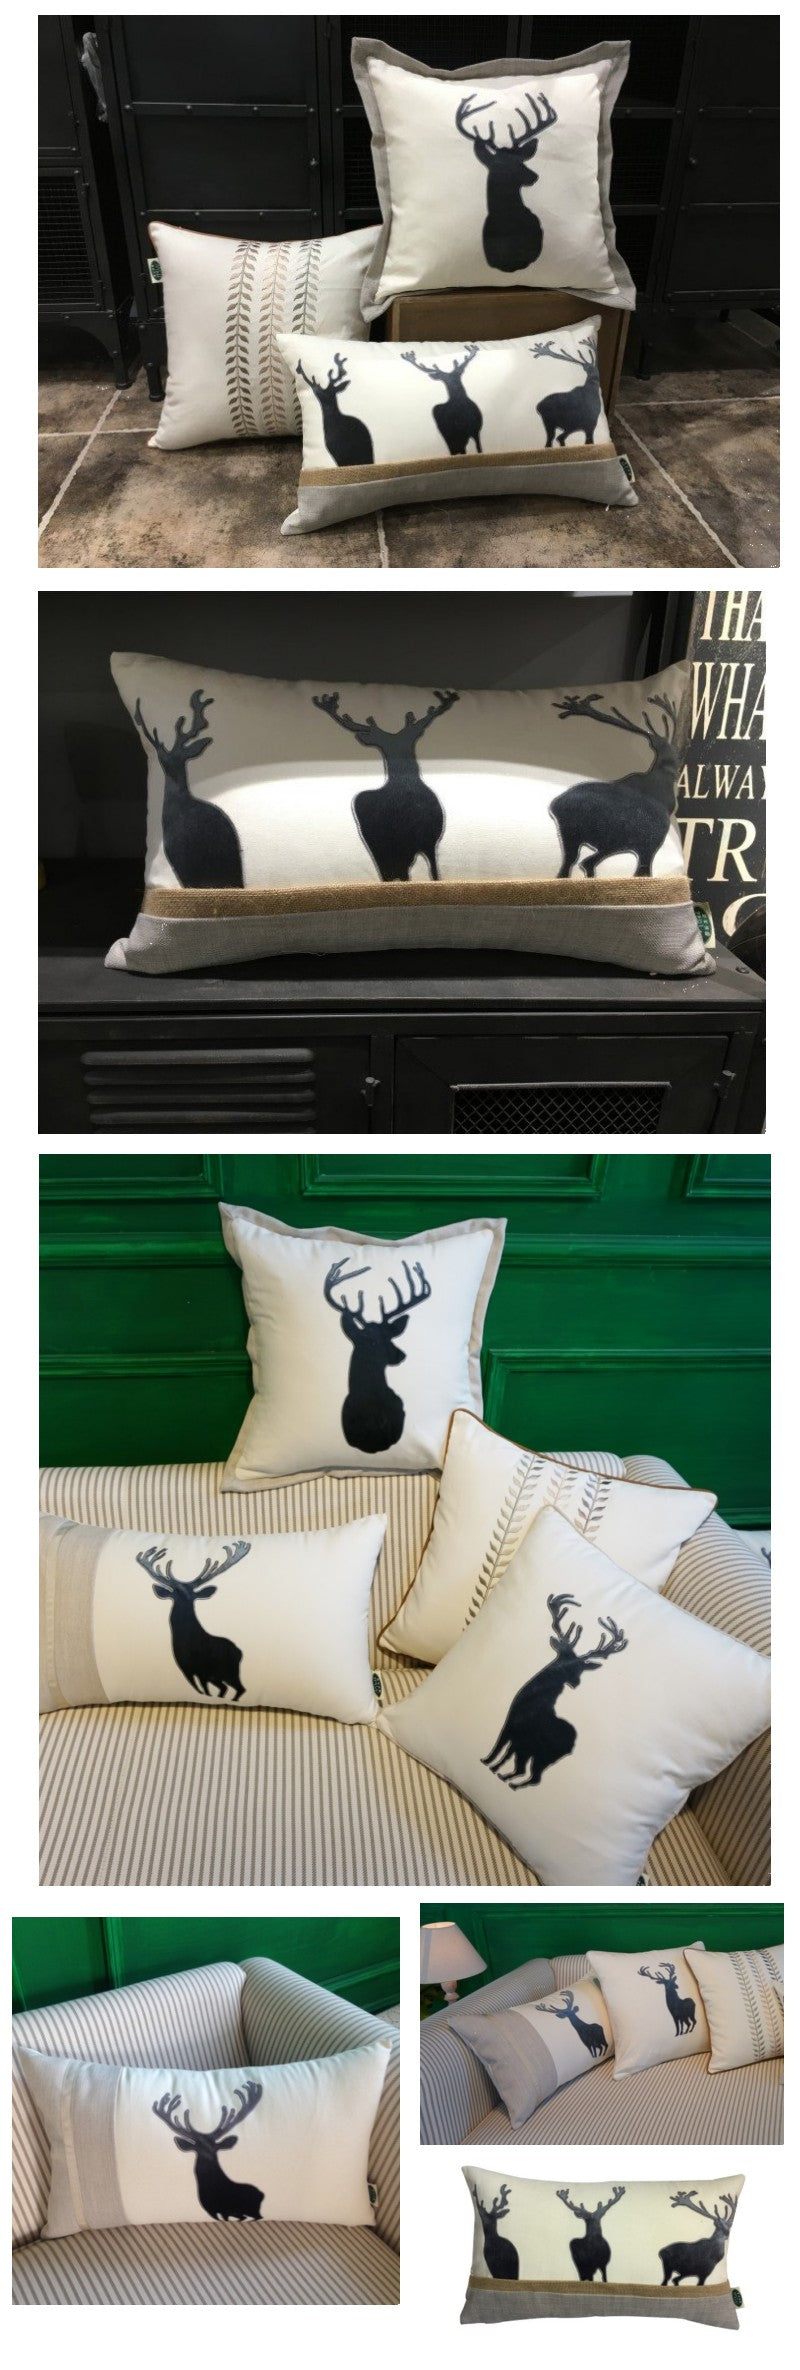 Embroider Elk Cotton Pillow Cover, Decorative Throw Pillow, Sofa Pillows, Home Decor